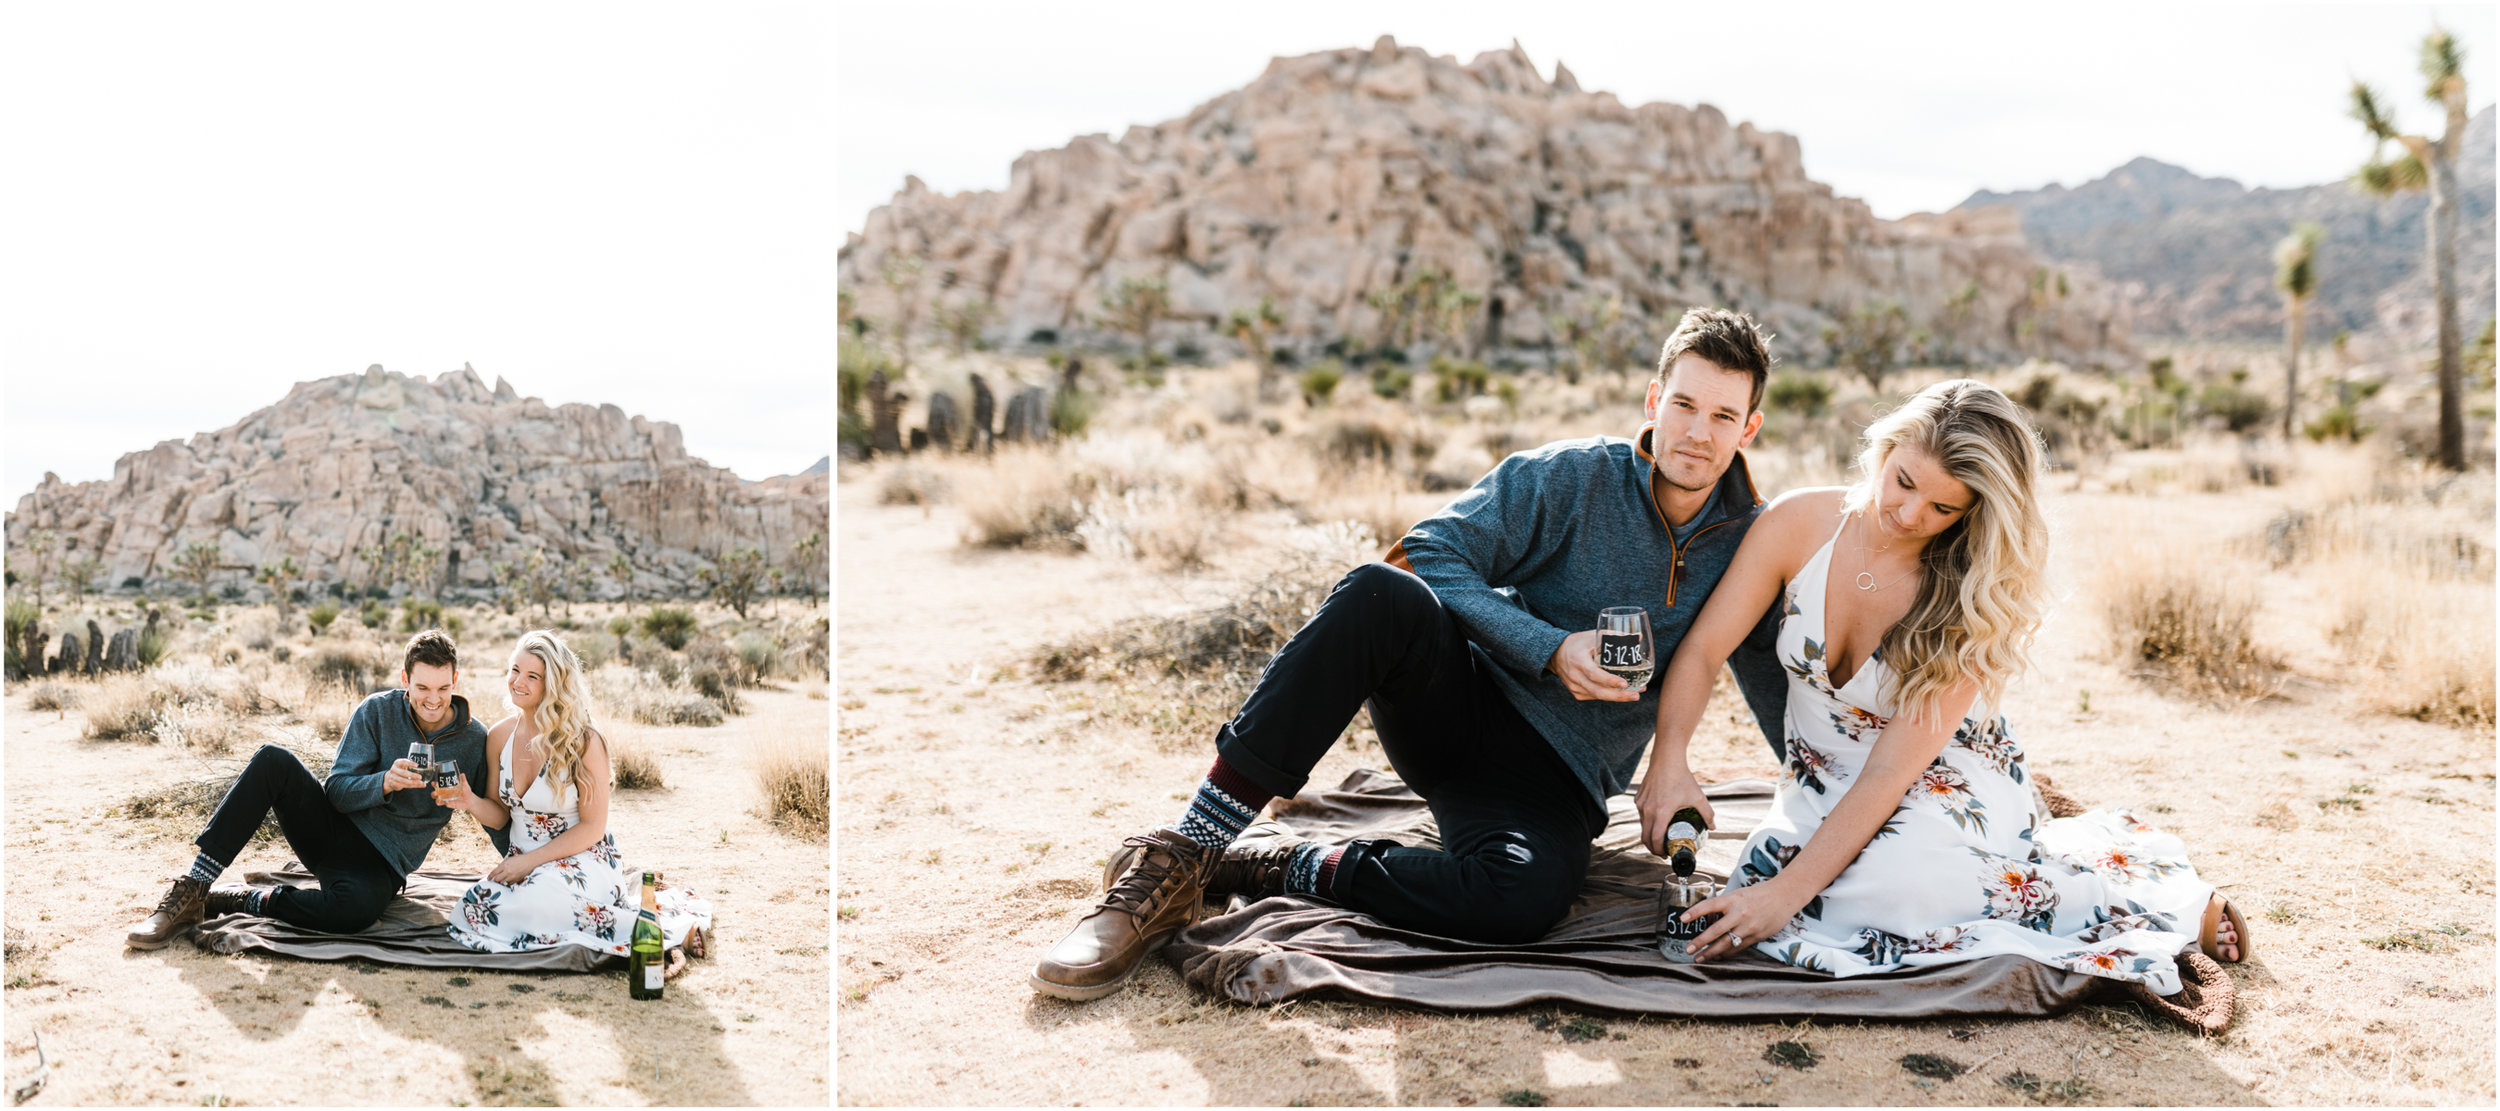 Spice-Up-Your-Engagement-Shoot-With-These-6-Super-Fun-Props-Inspiration-Clarisse-Rae-Southern-California-Wedding-Photographer6